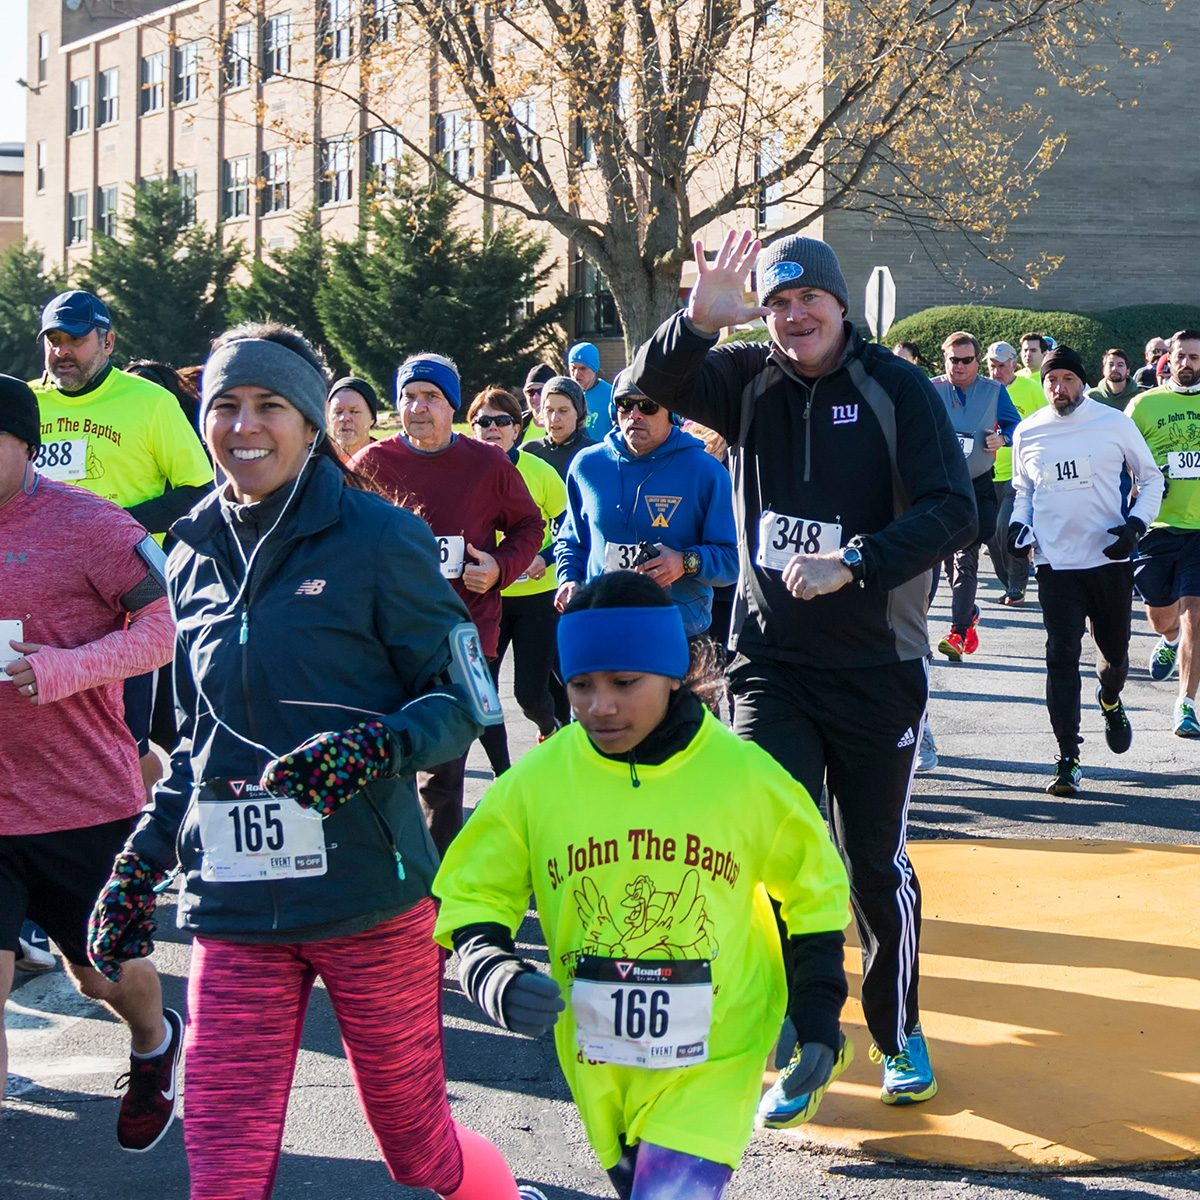 Runners wave to the camera at the start of the Run Your Turkey Off 4K race, the day after thanksgiving.